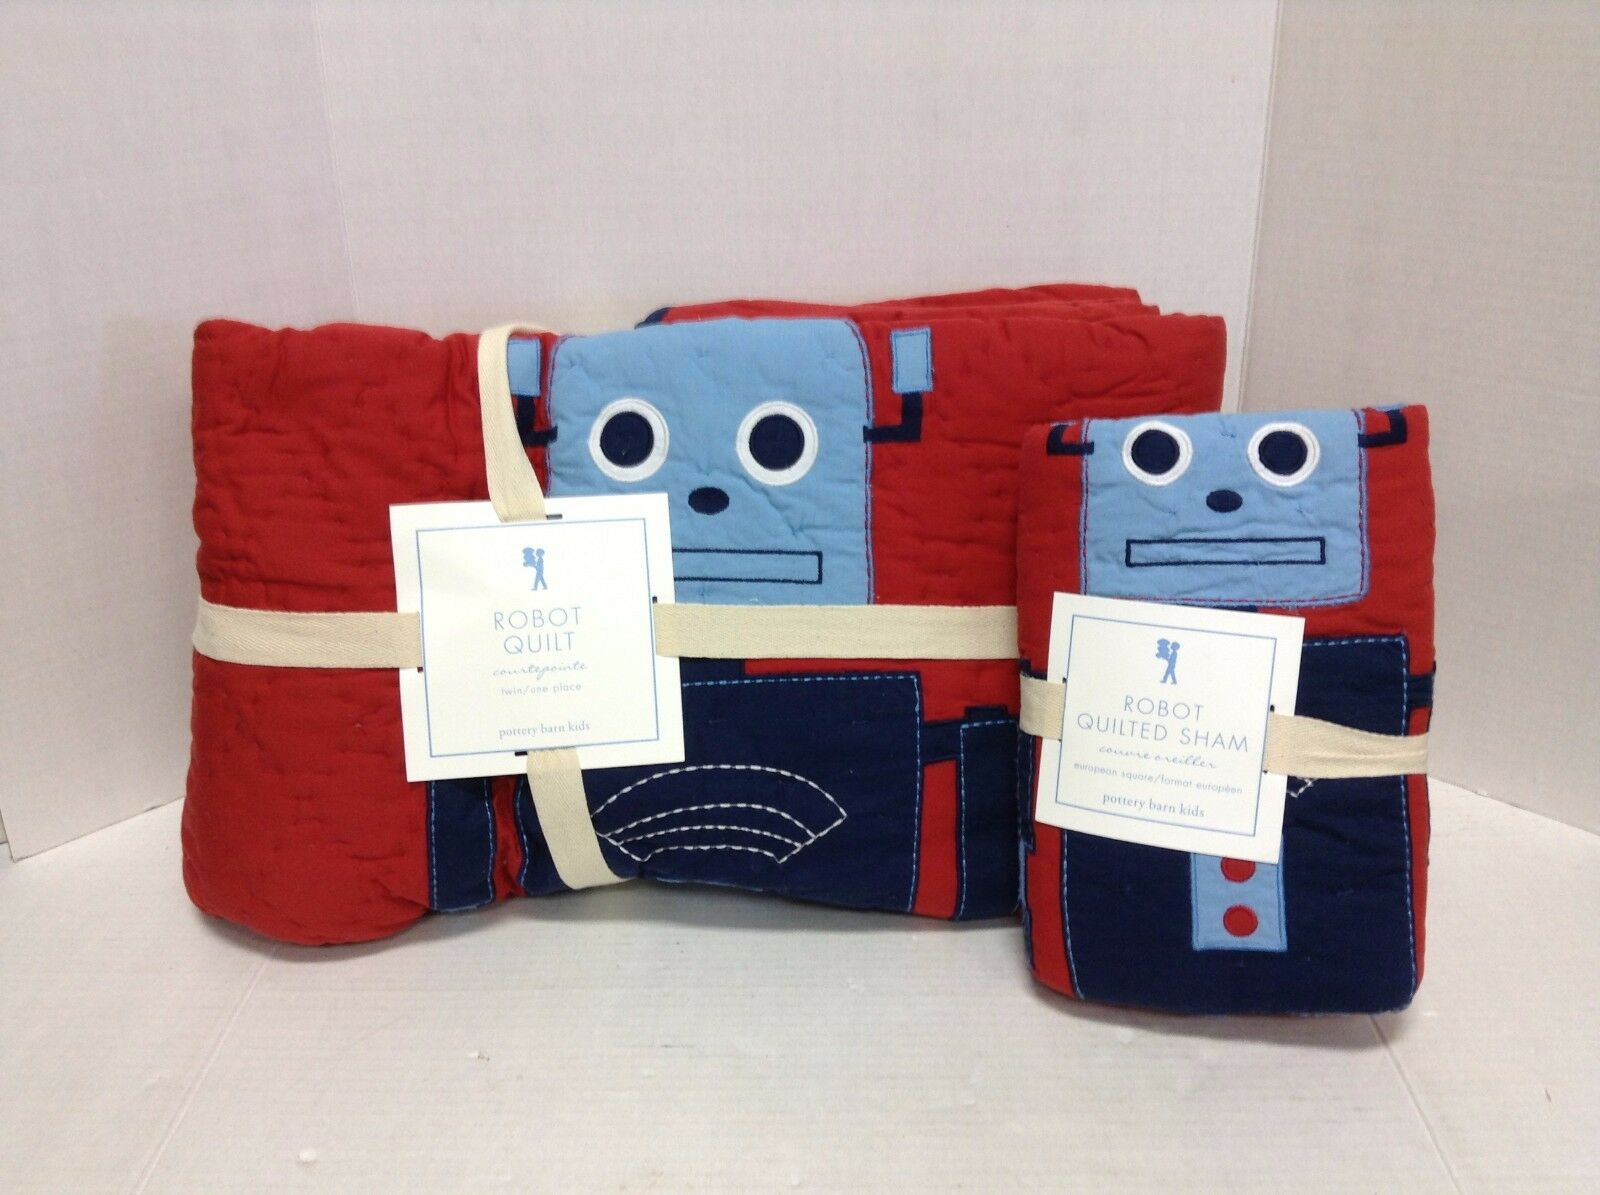 Pottery Barn Kids Retro Robot Applique Embroidered Quilt Twin Euro Shams Red